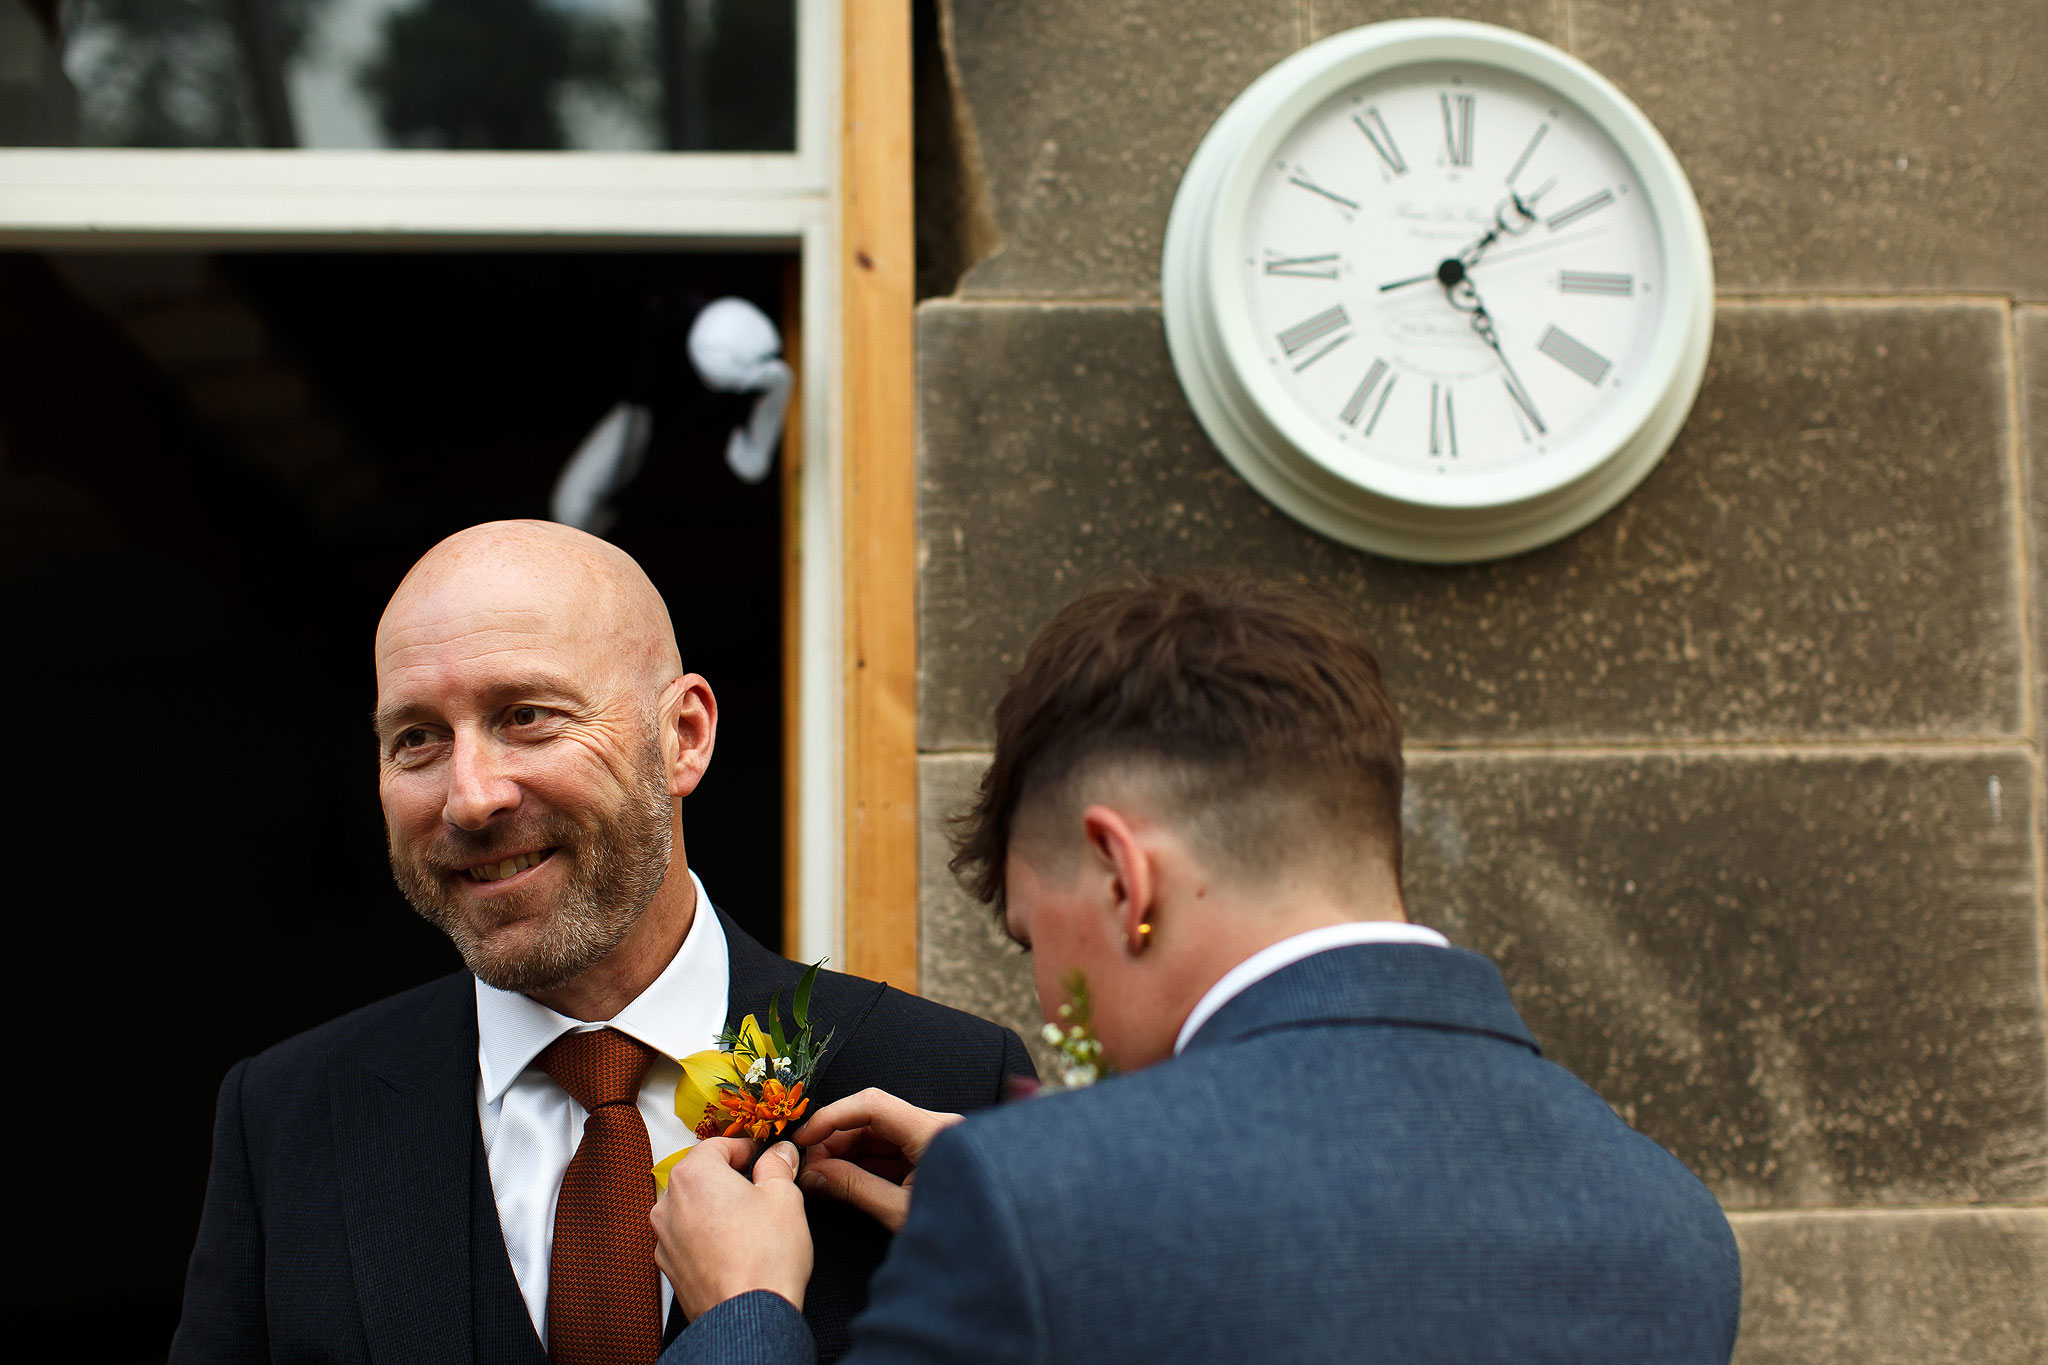 Groom having button hole pinned on with clock in background | Hargate Hall Wedding Photography